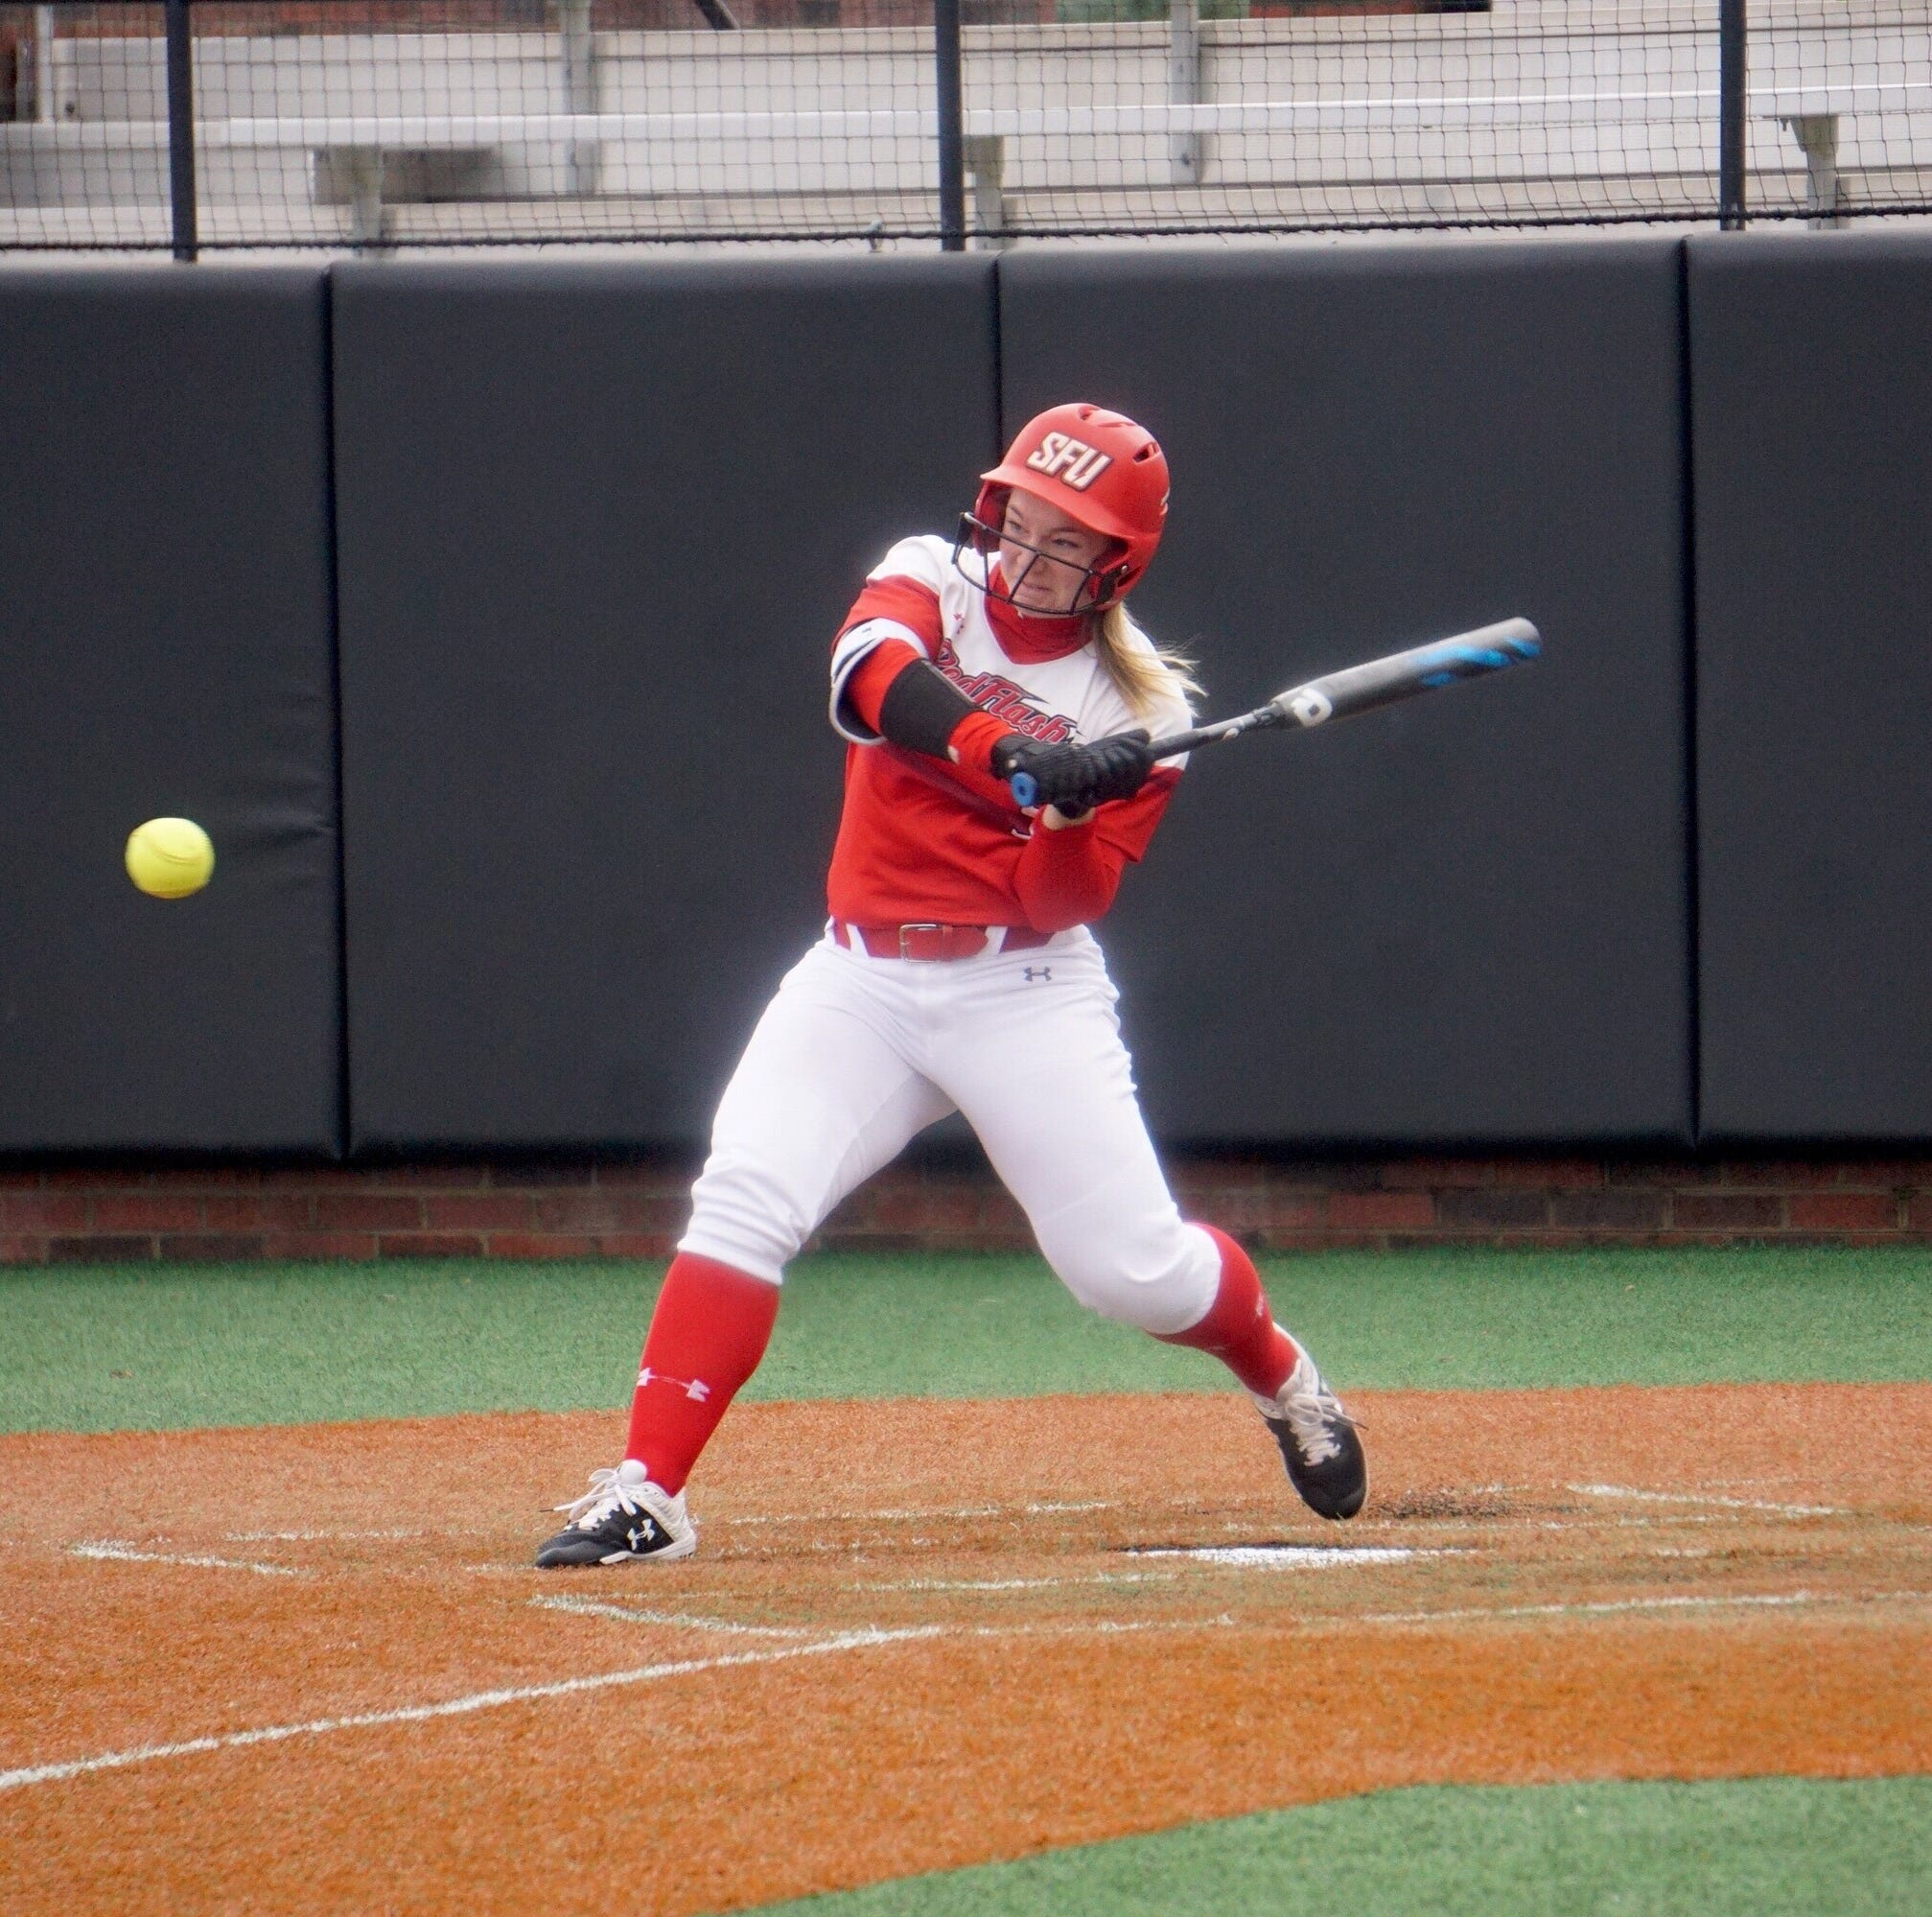 'On top of the world': Spring Grove grad smashing college softball records